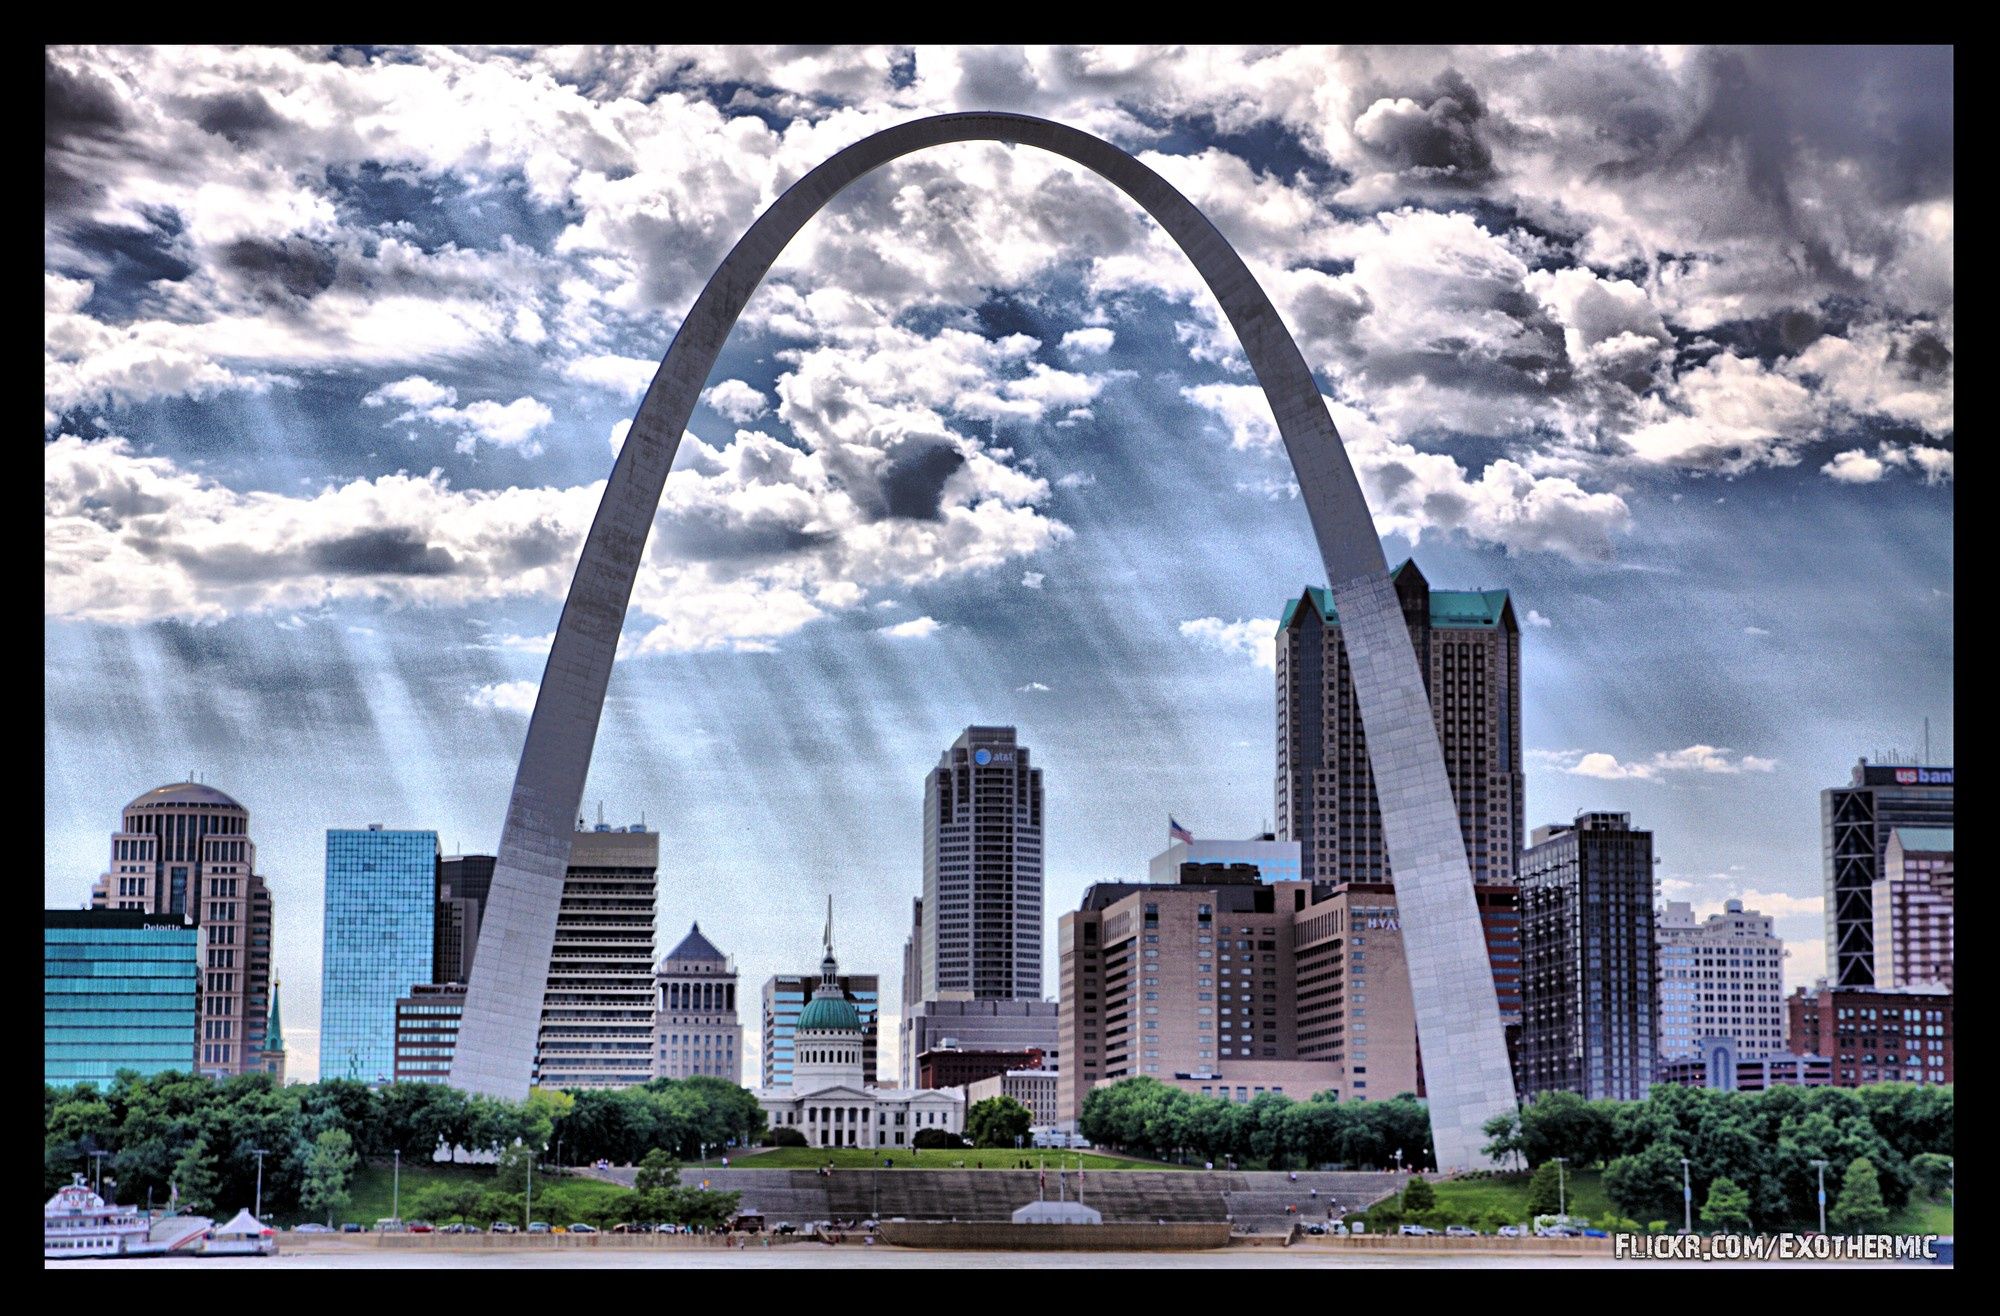 Ad classics gateway arch eero saarinen archdaily for St louis architecture